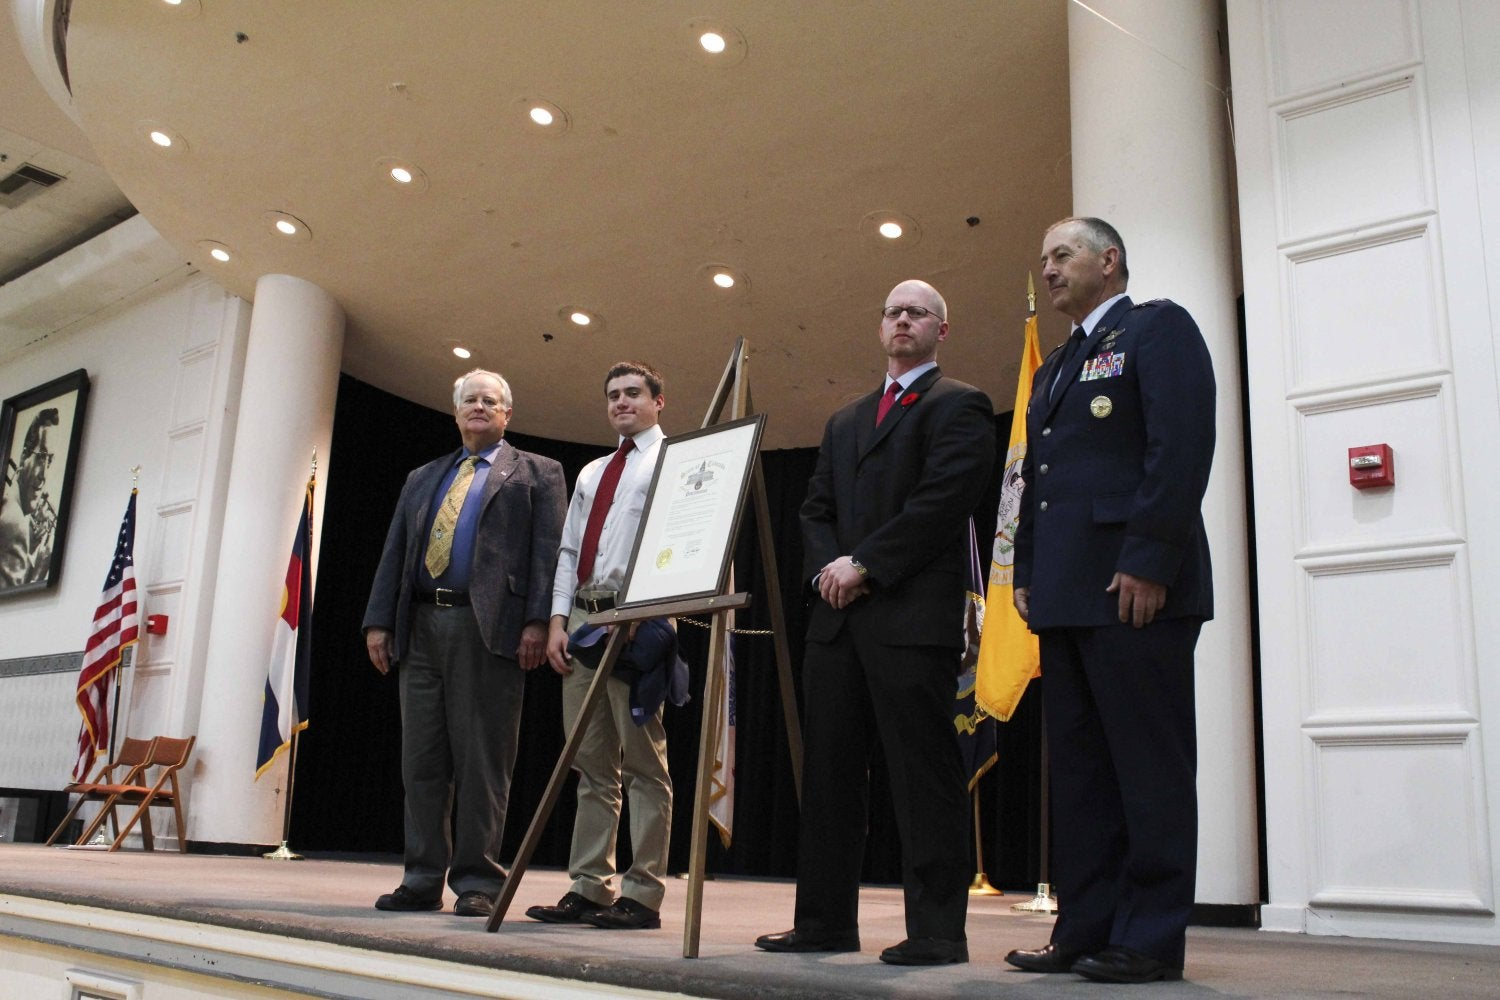 The re-dedication of the UMC as Colorado's Official State Memorial to Colorado Veterans.